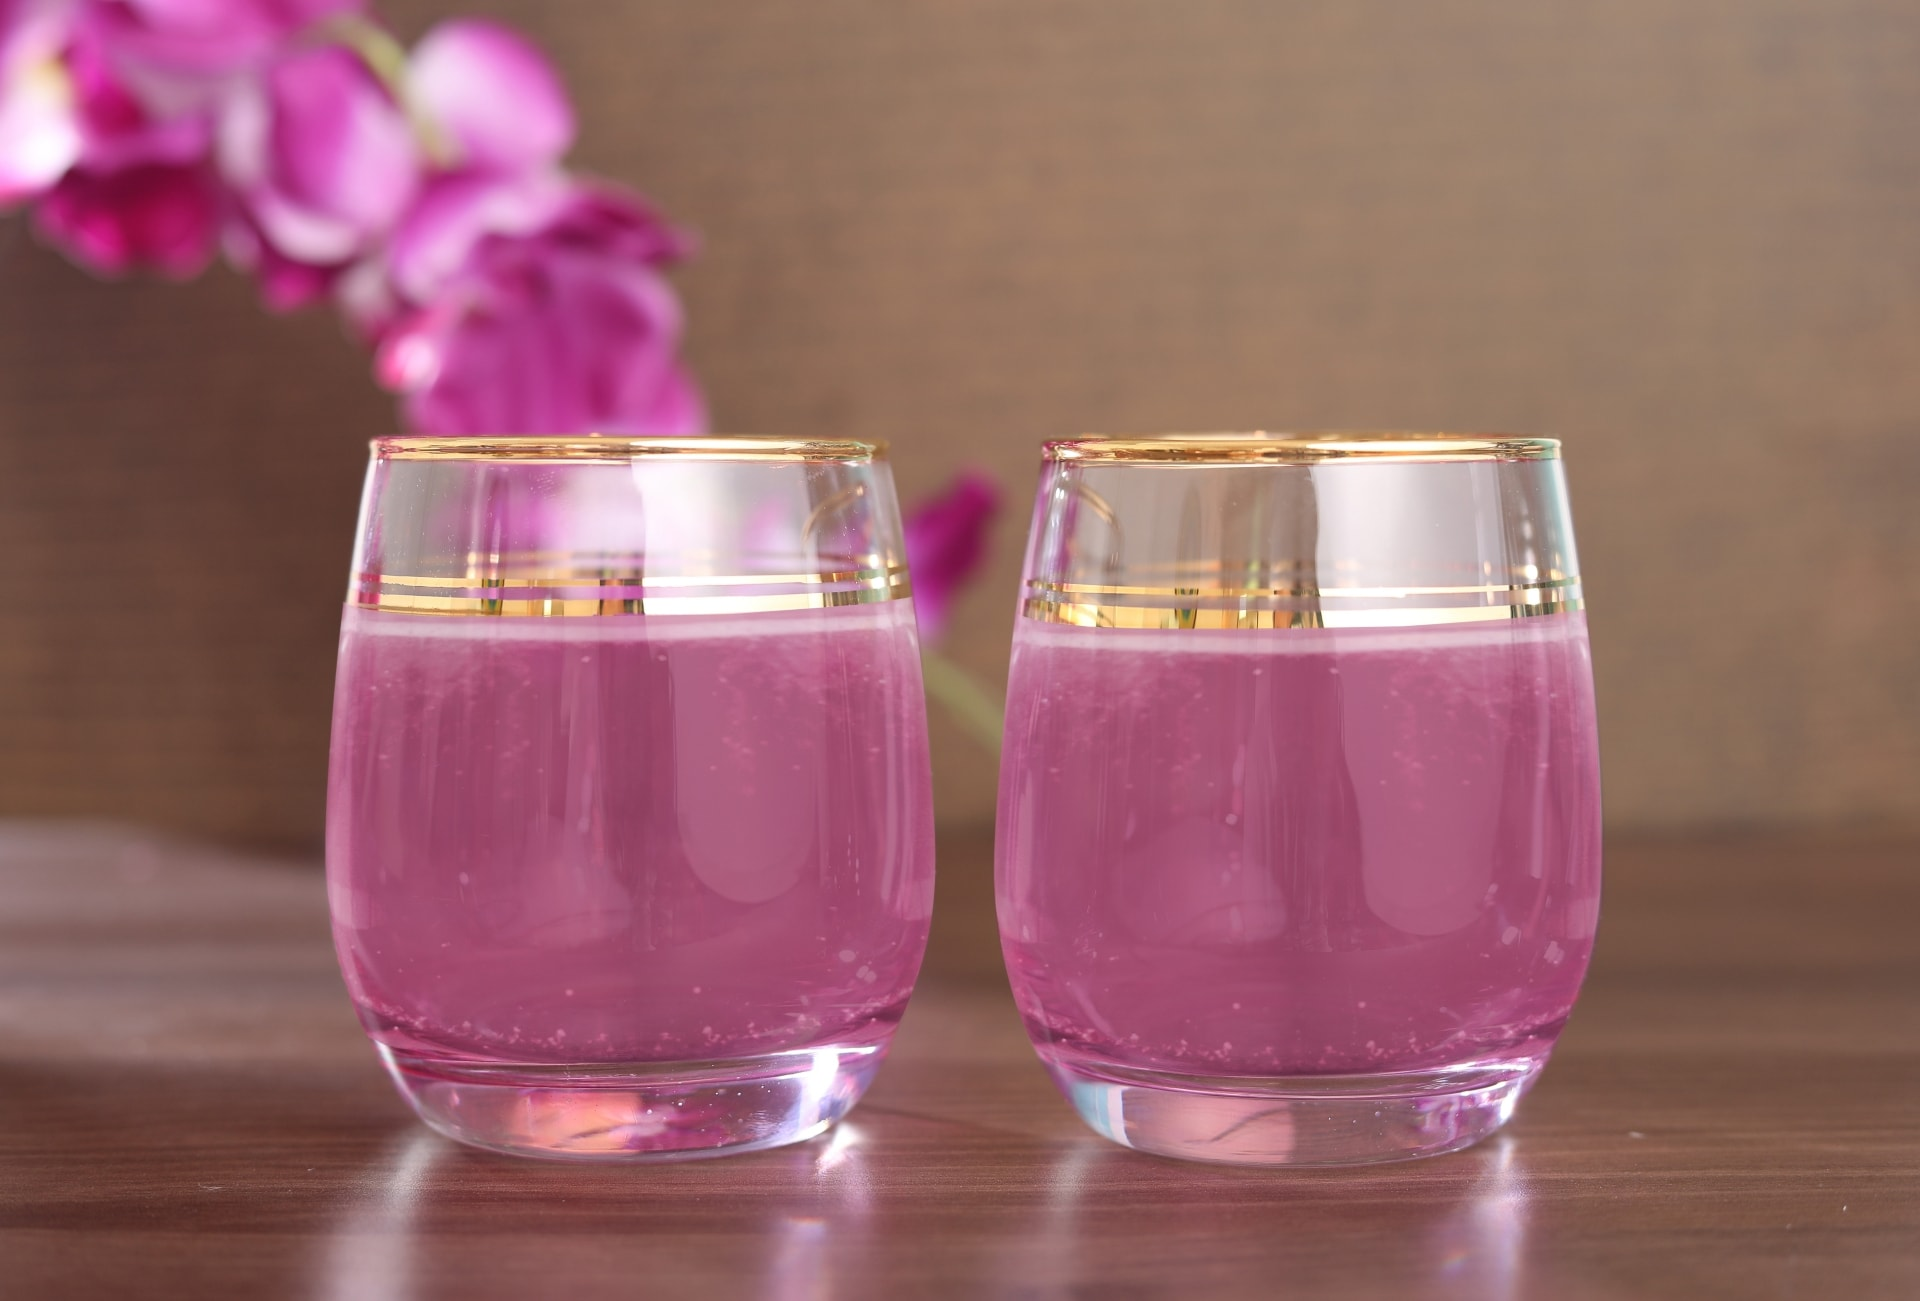 Viola Opulent Drinking Glass